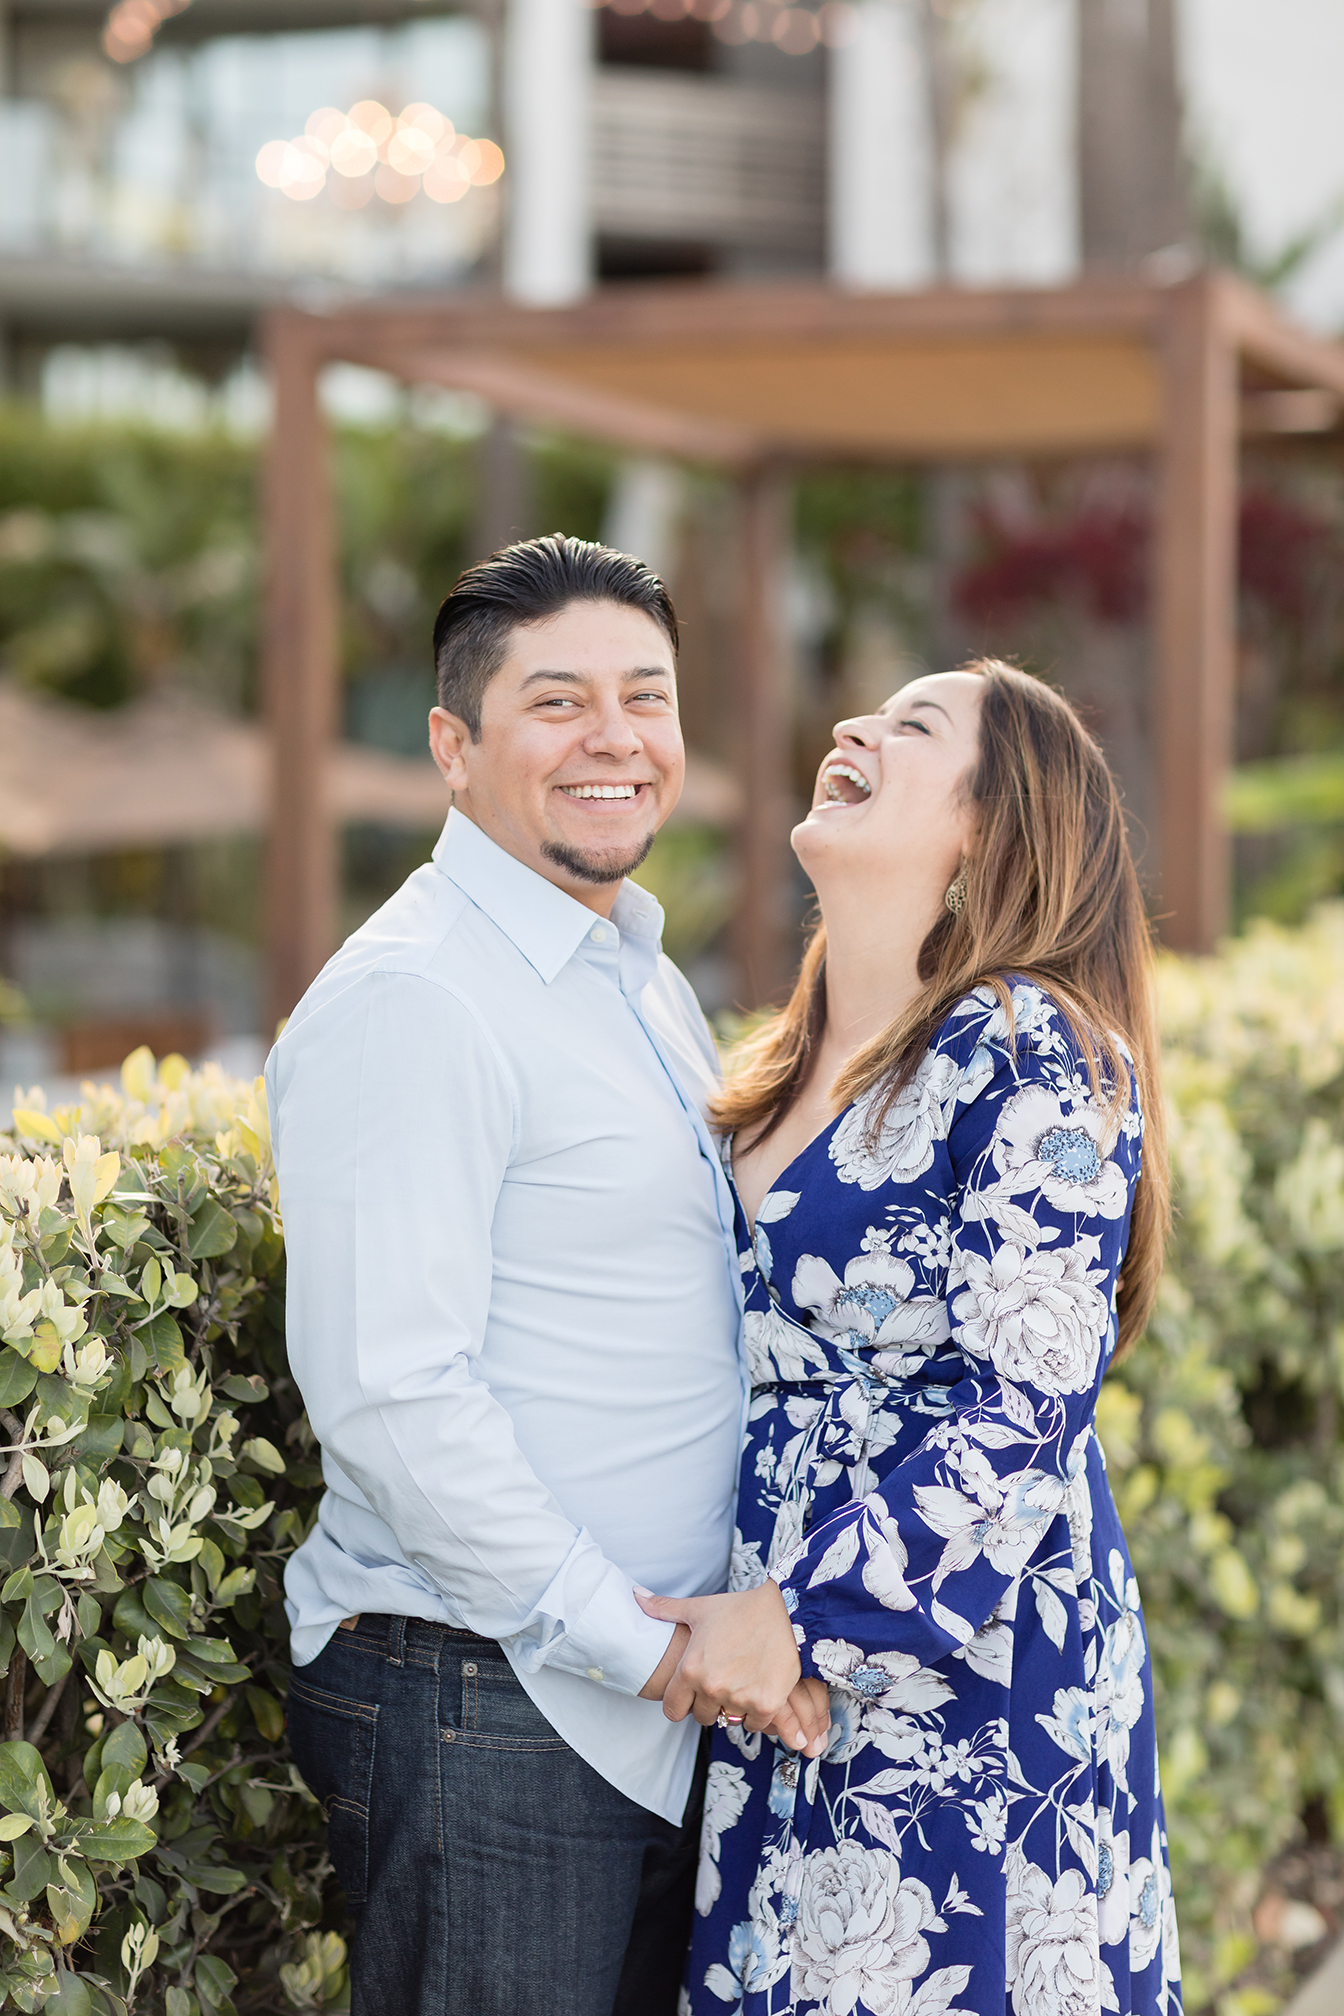 Authentic Laughter LB Engagement Photoshoot.jpg